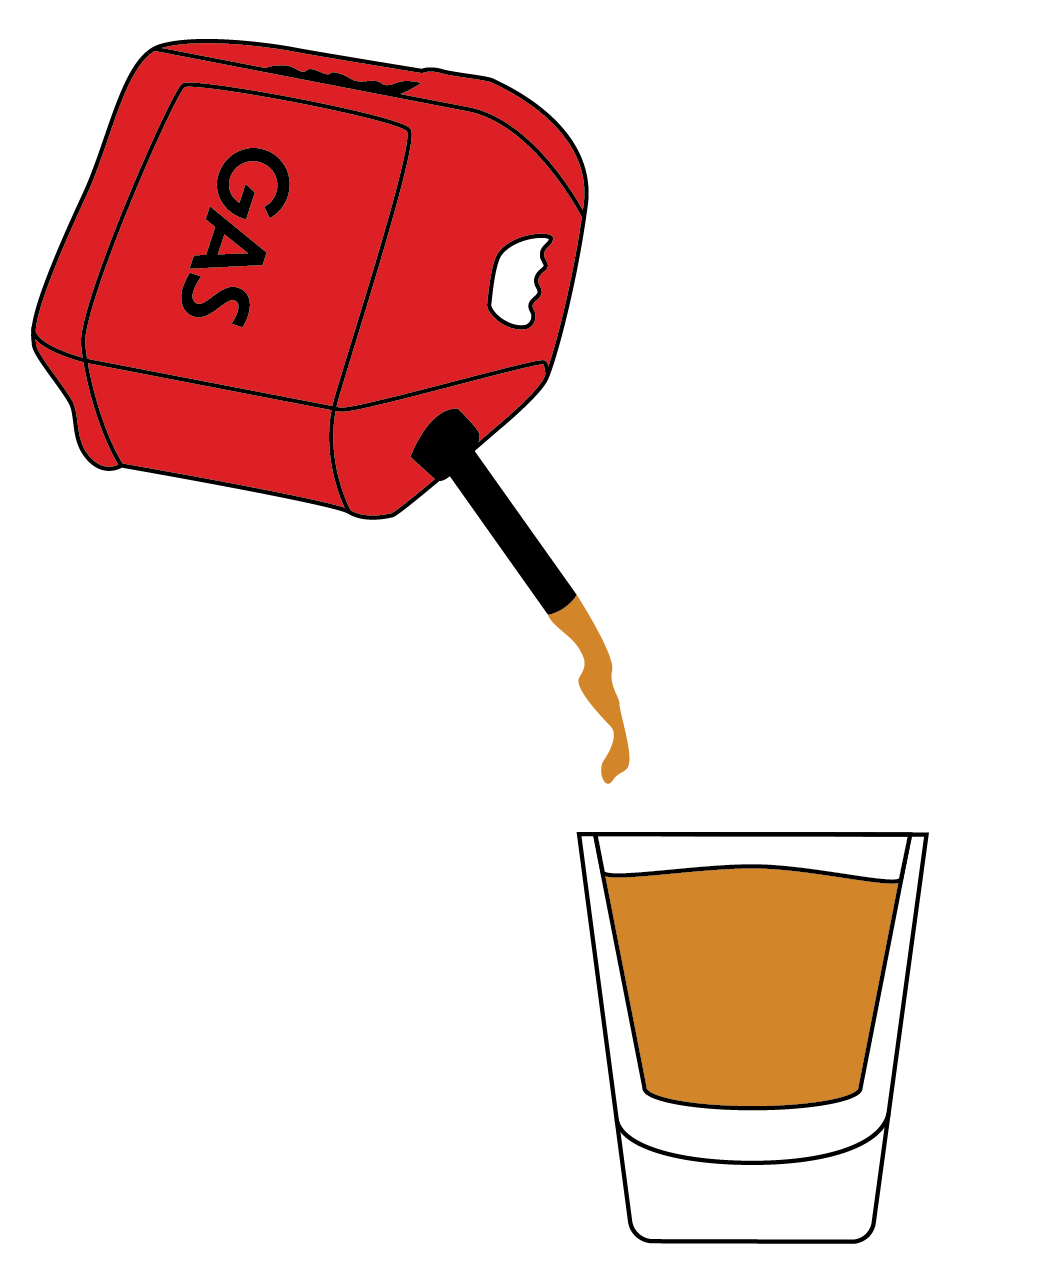 a shot glass with gasoline being poured into it